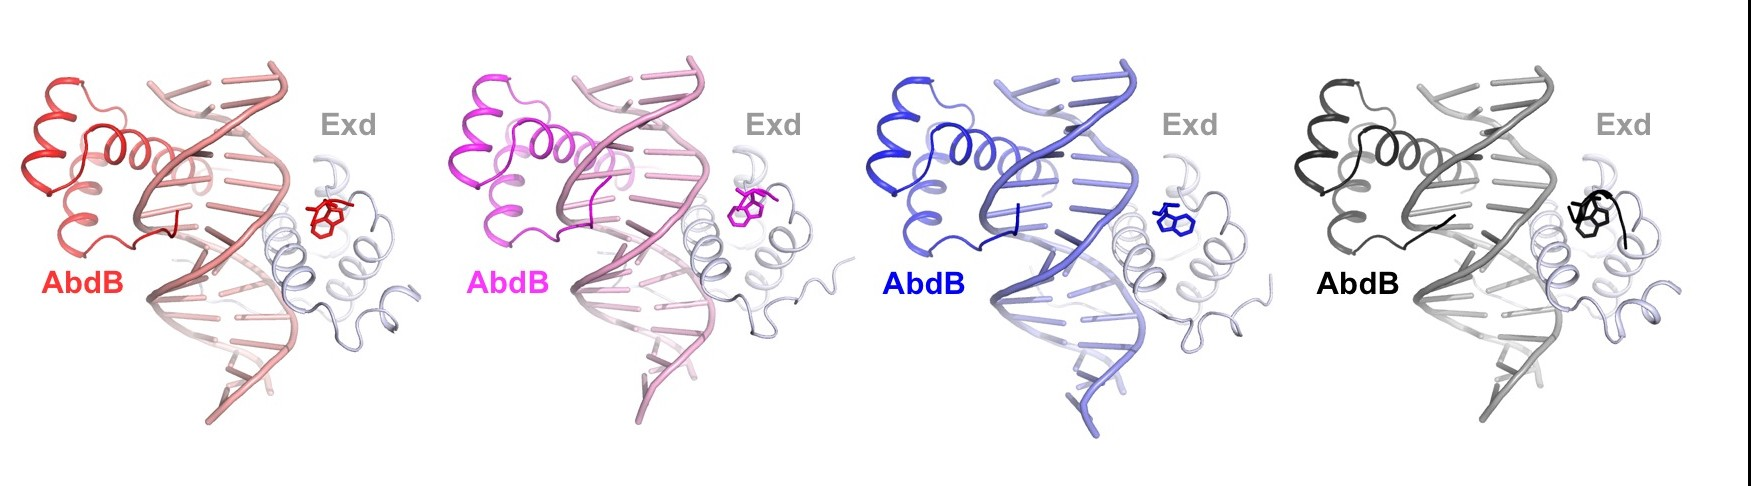 Four x-ray structures of AbdB-Exd bound to four different binding sites